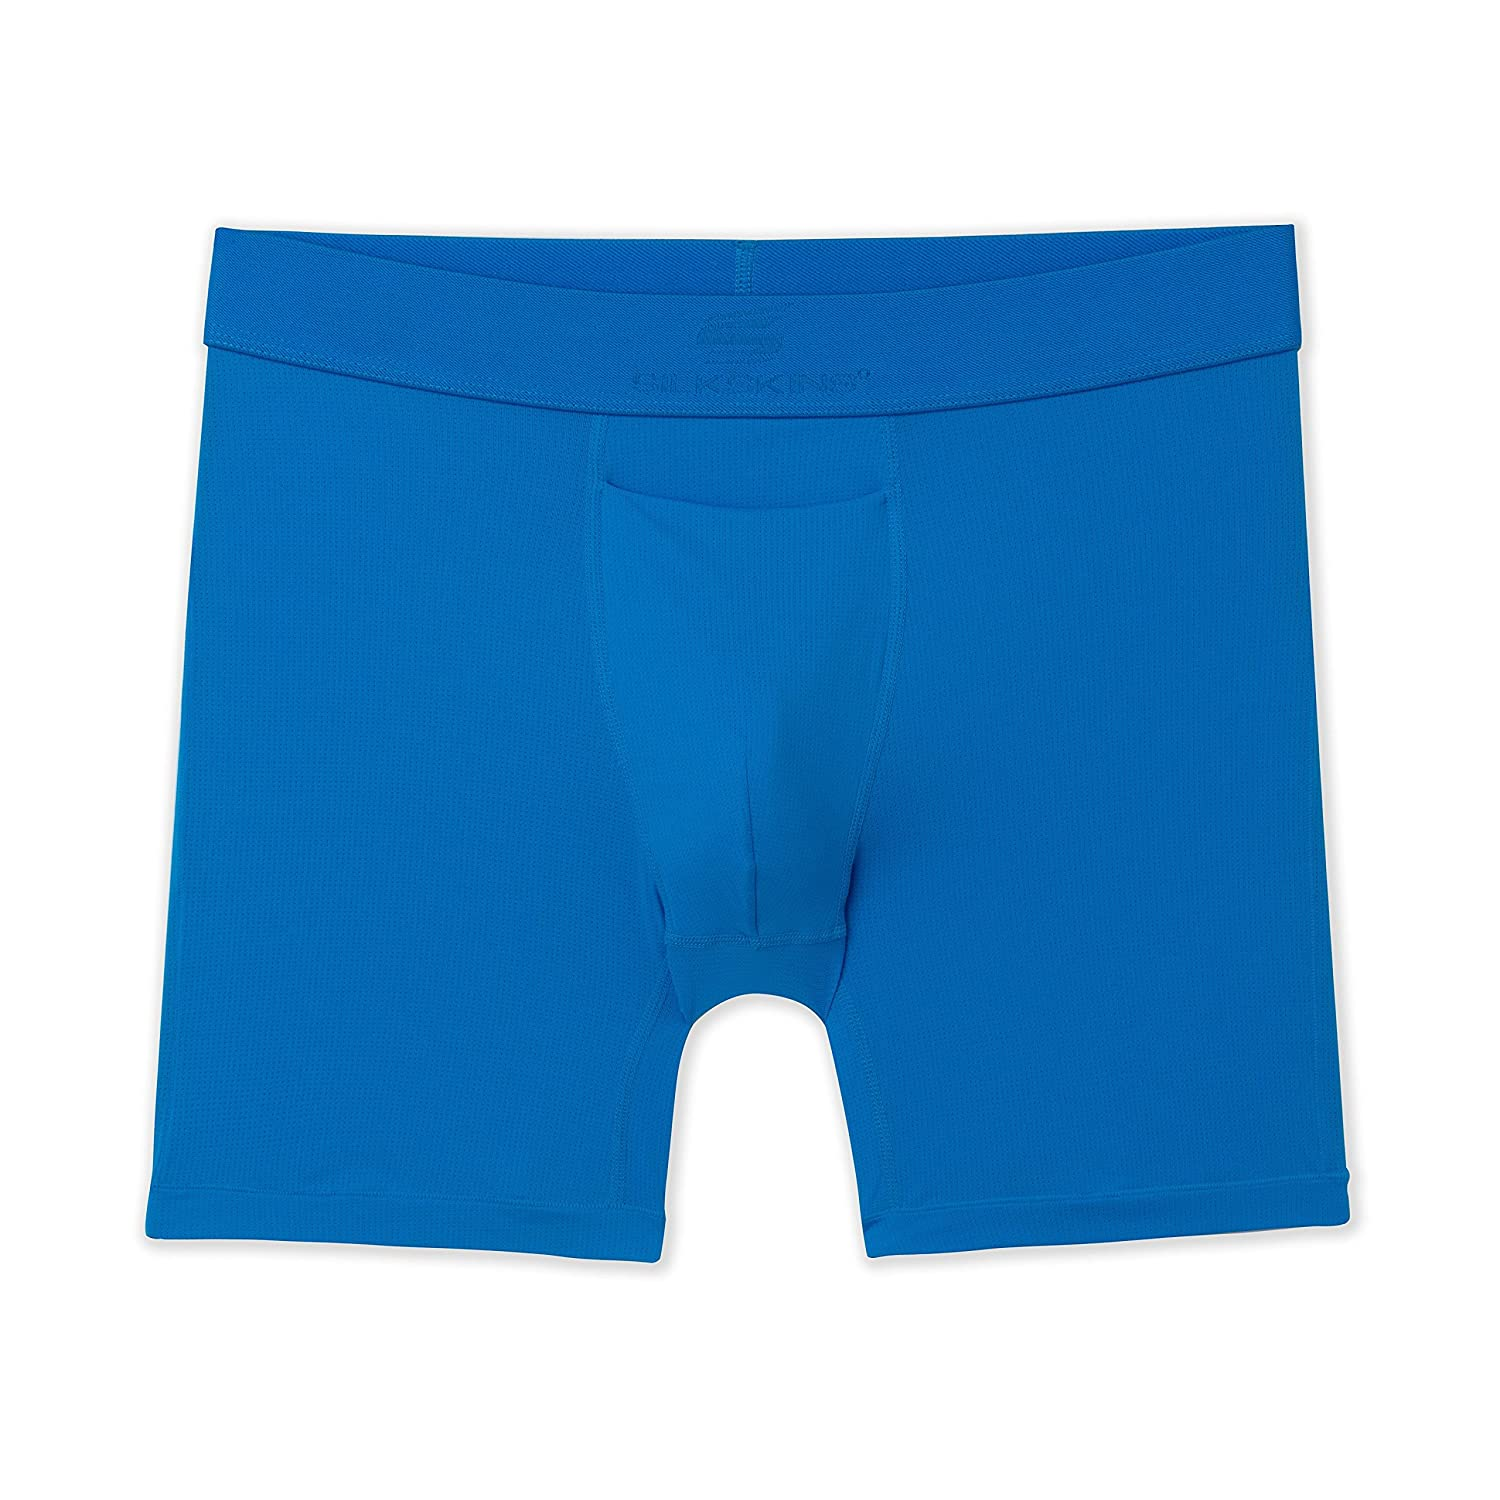 Terramar Mens 6 SilkSkins AIRCOOL Boxer Briefs with Fly Available in 1-Pack or 2-Pack